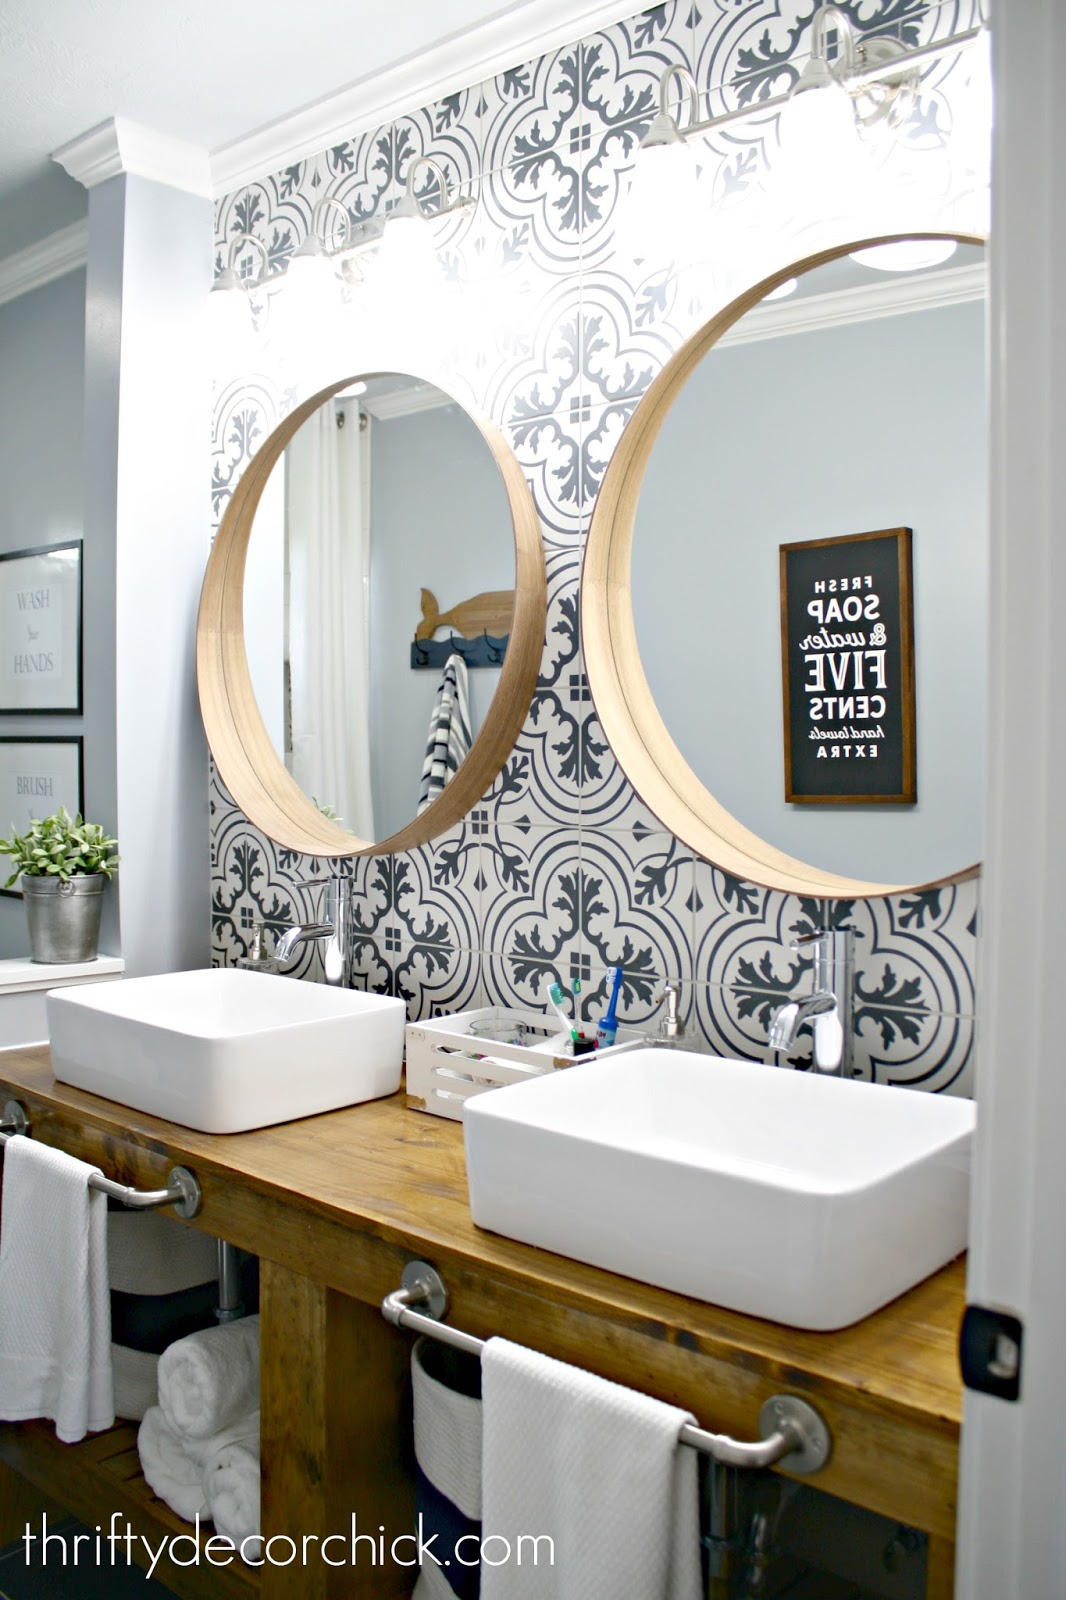 Bathroom makeover with wood vanity, vessel sinks and tile wall